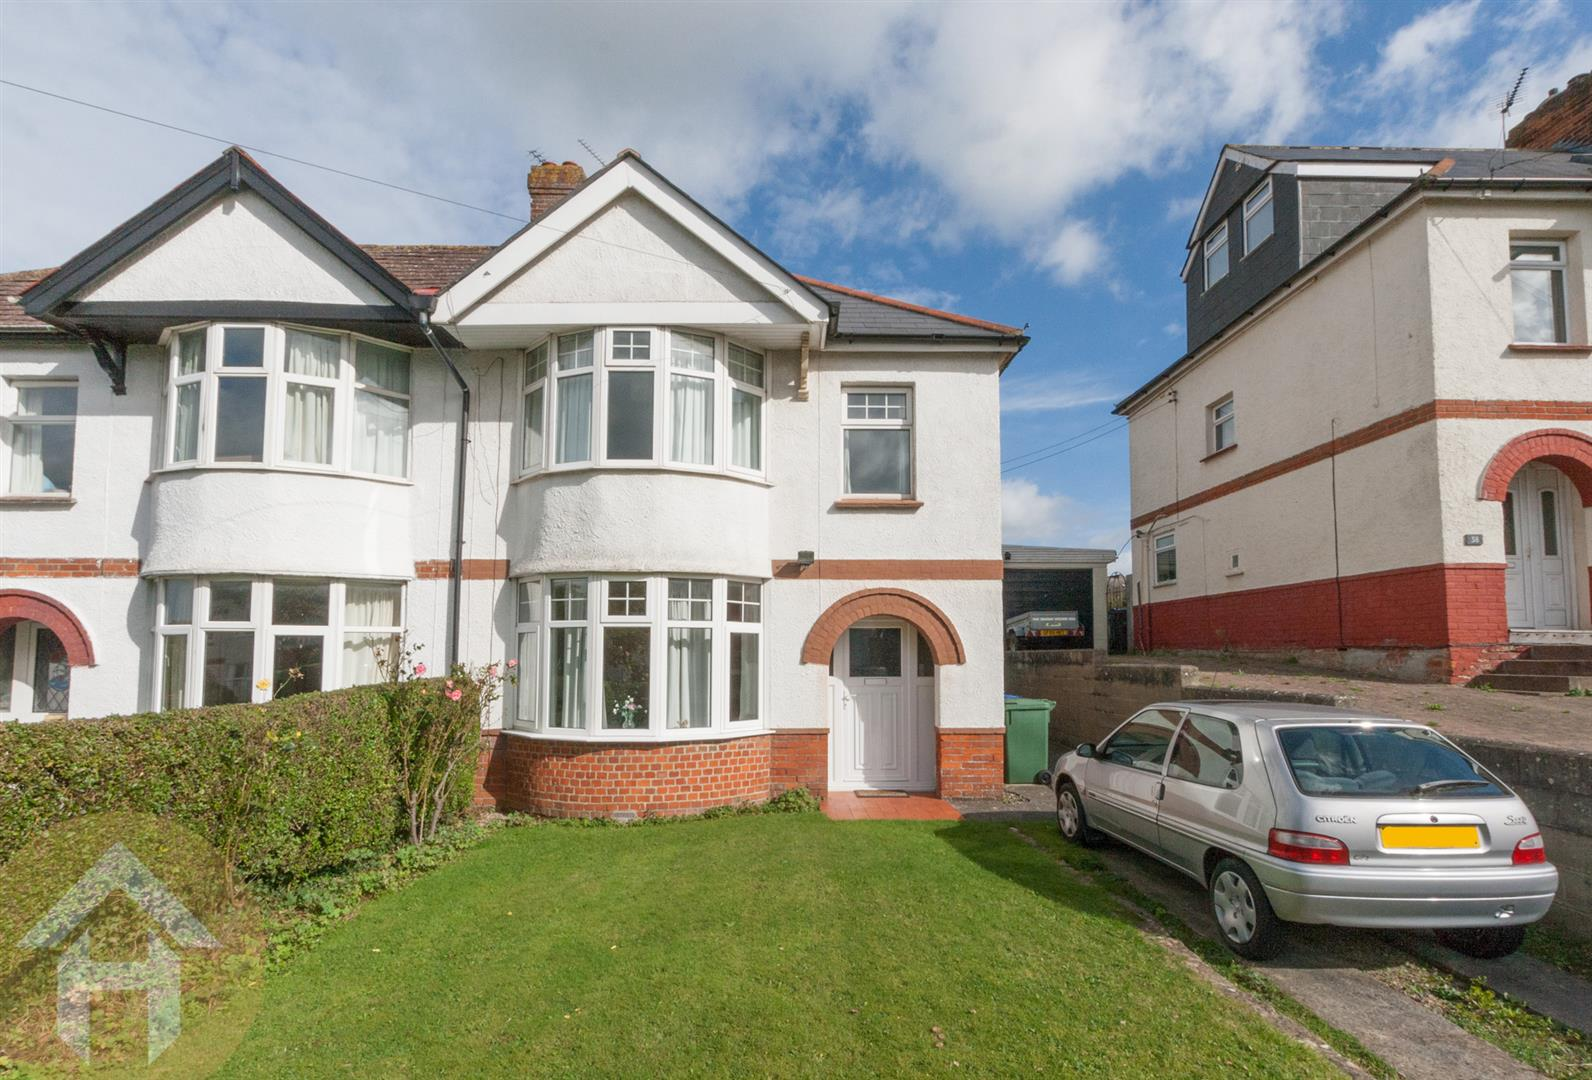 3 Bedrooms Semi Detached House for sale in Brynards Hill, Royal Wootton Bassett